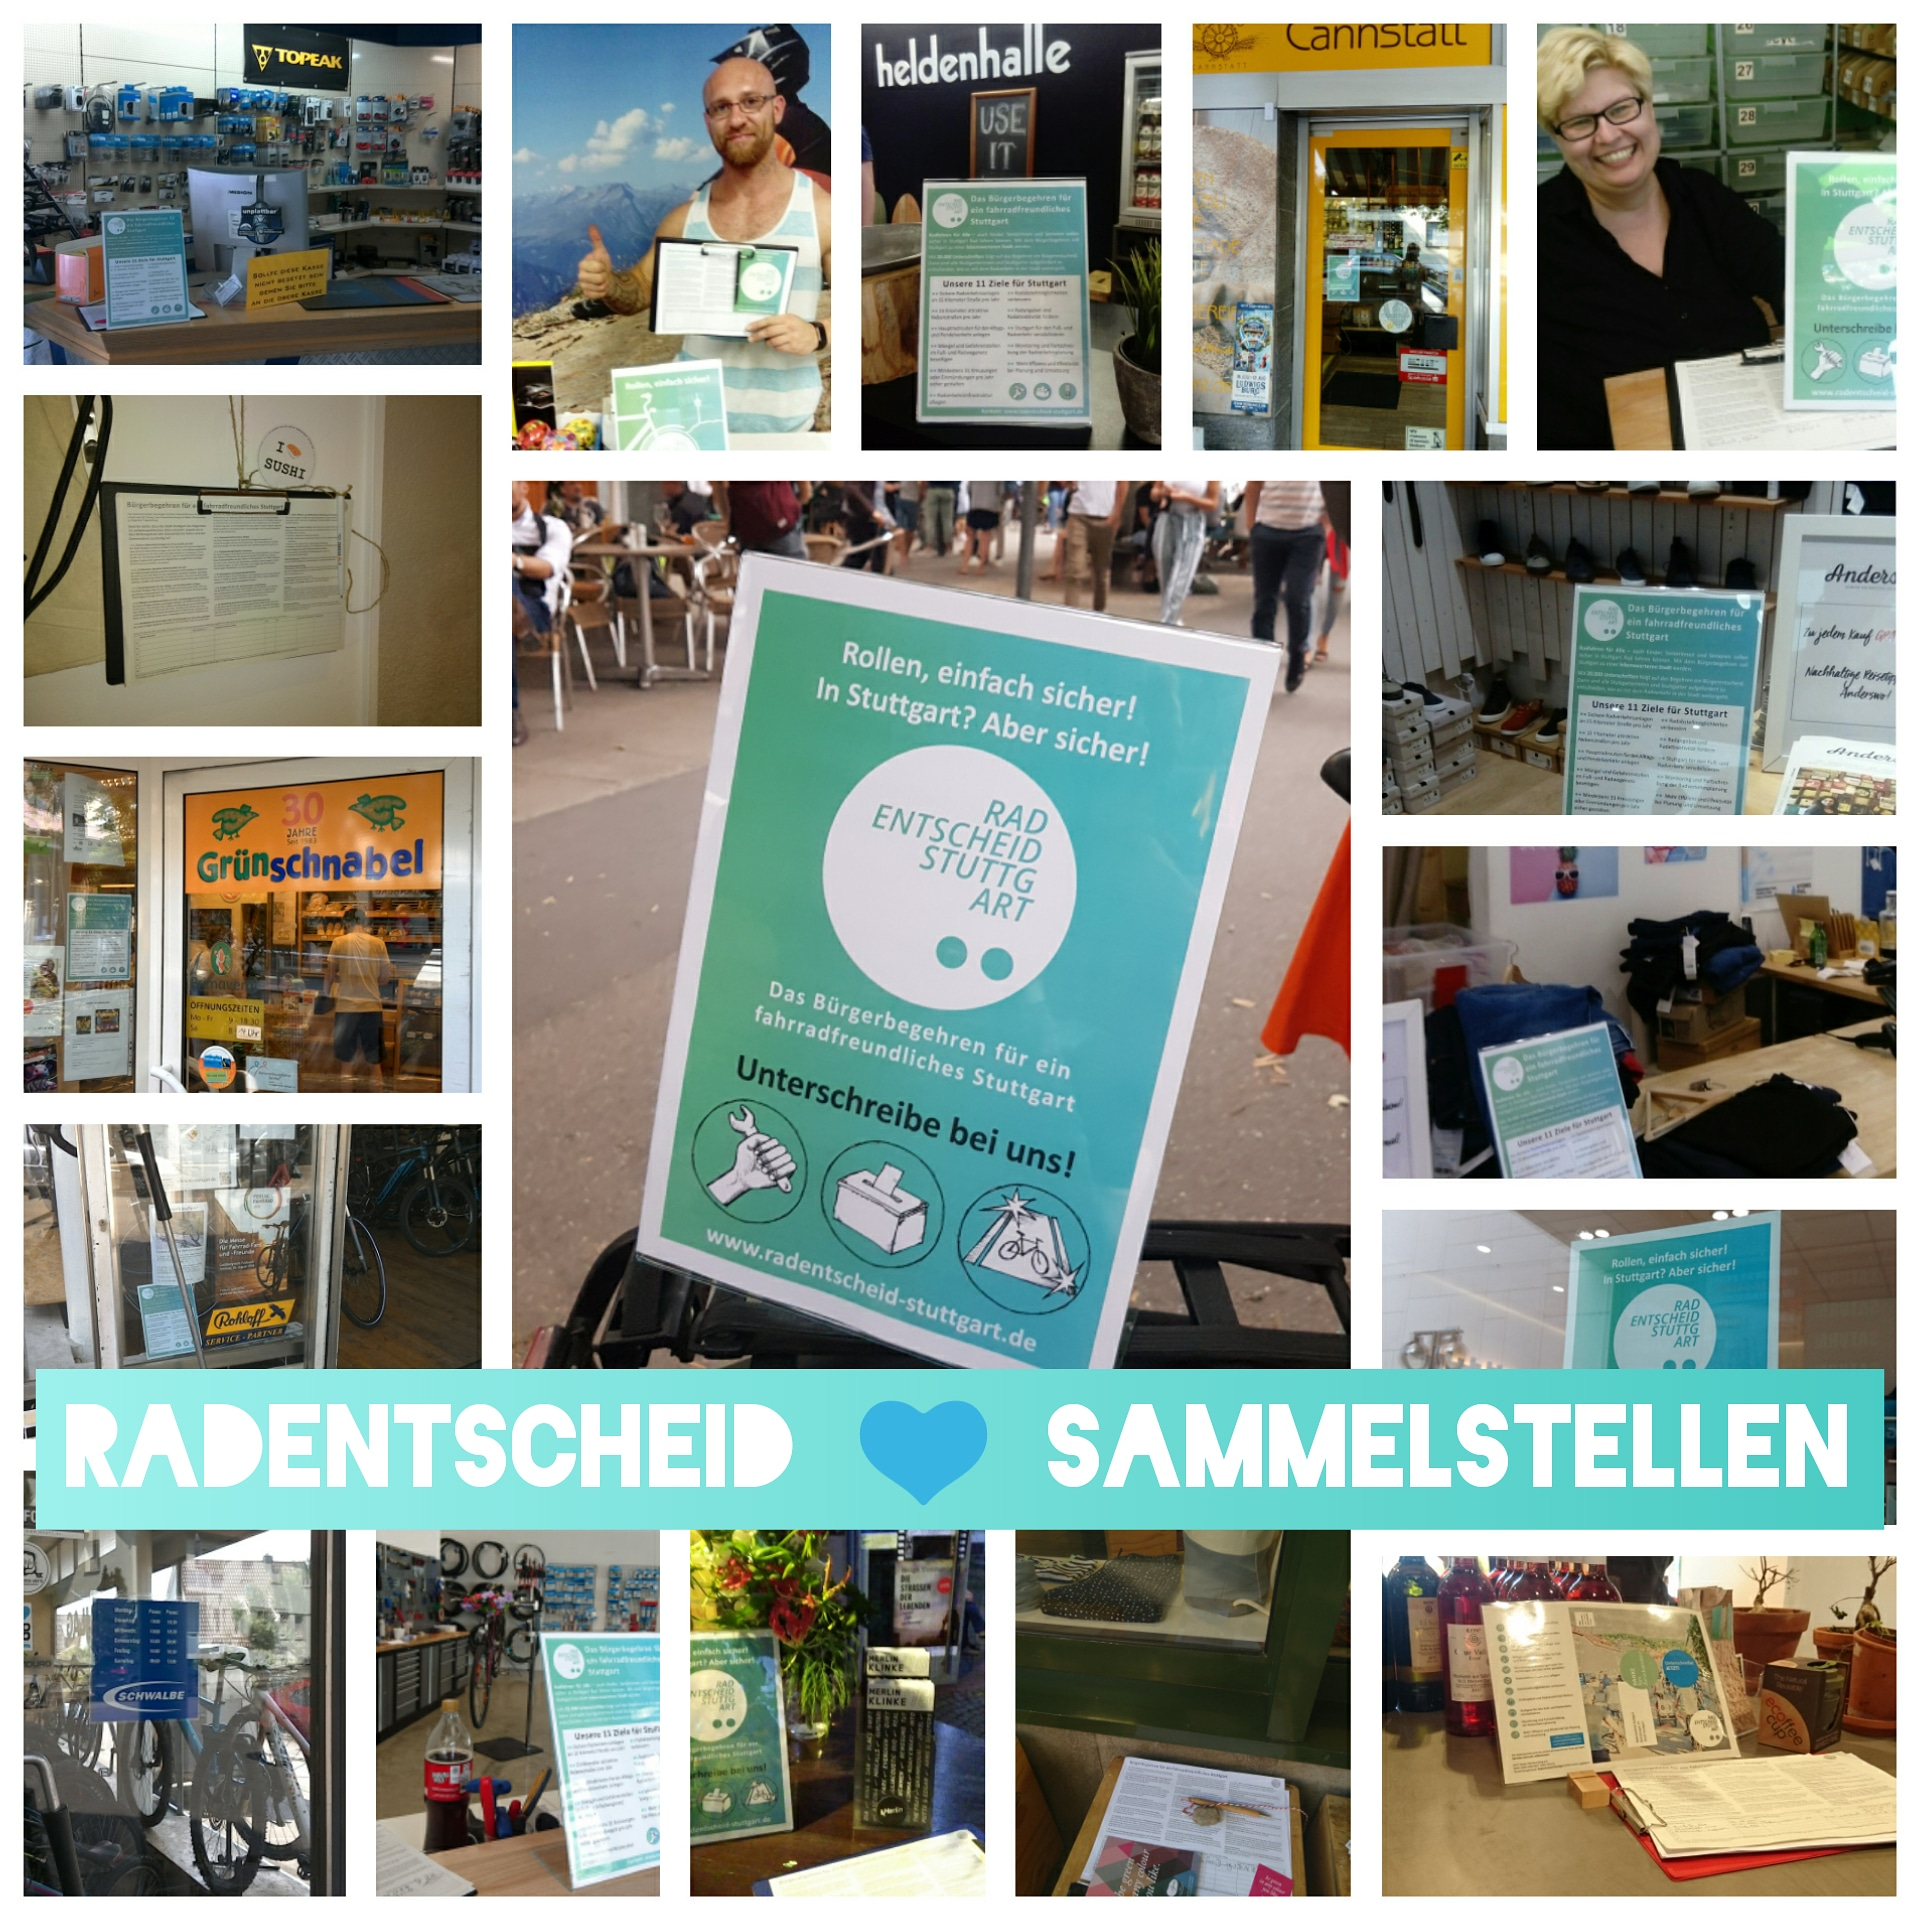 Collage Sammelstellen